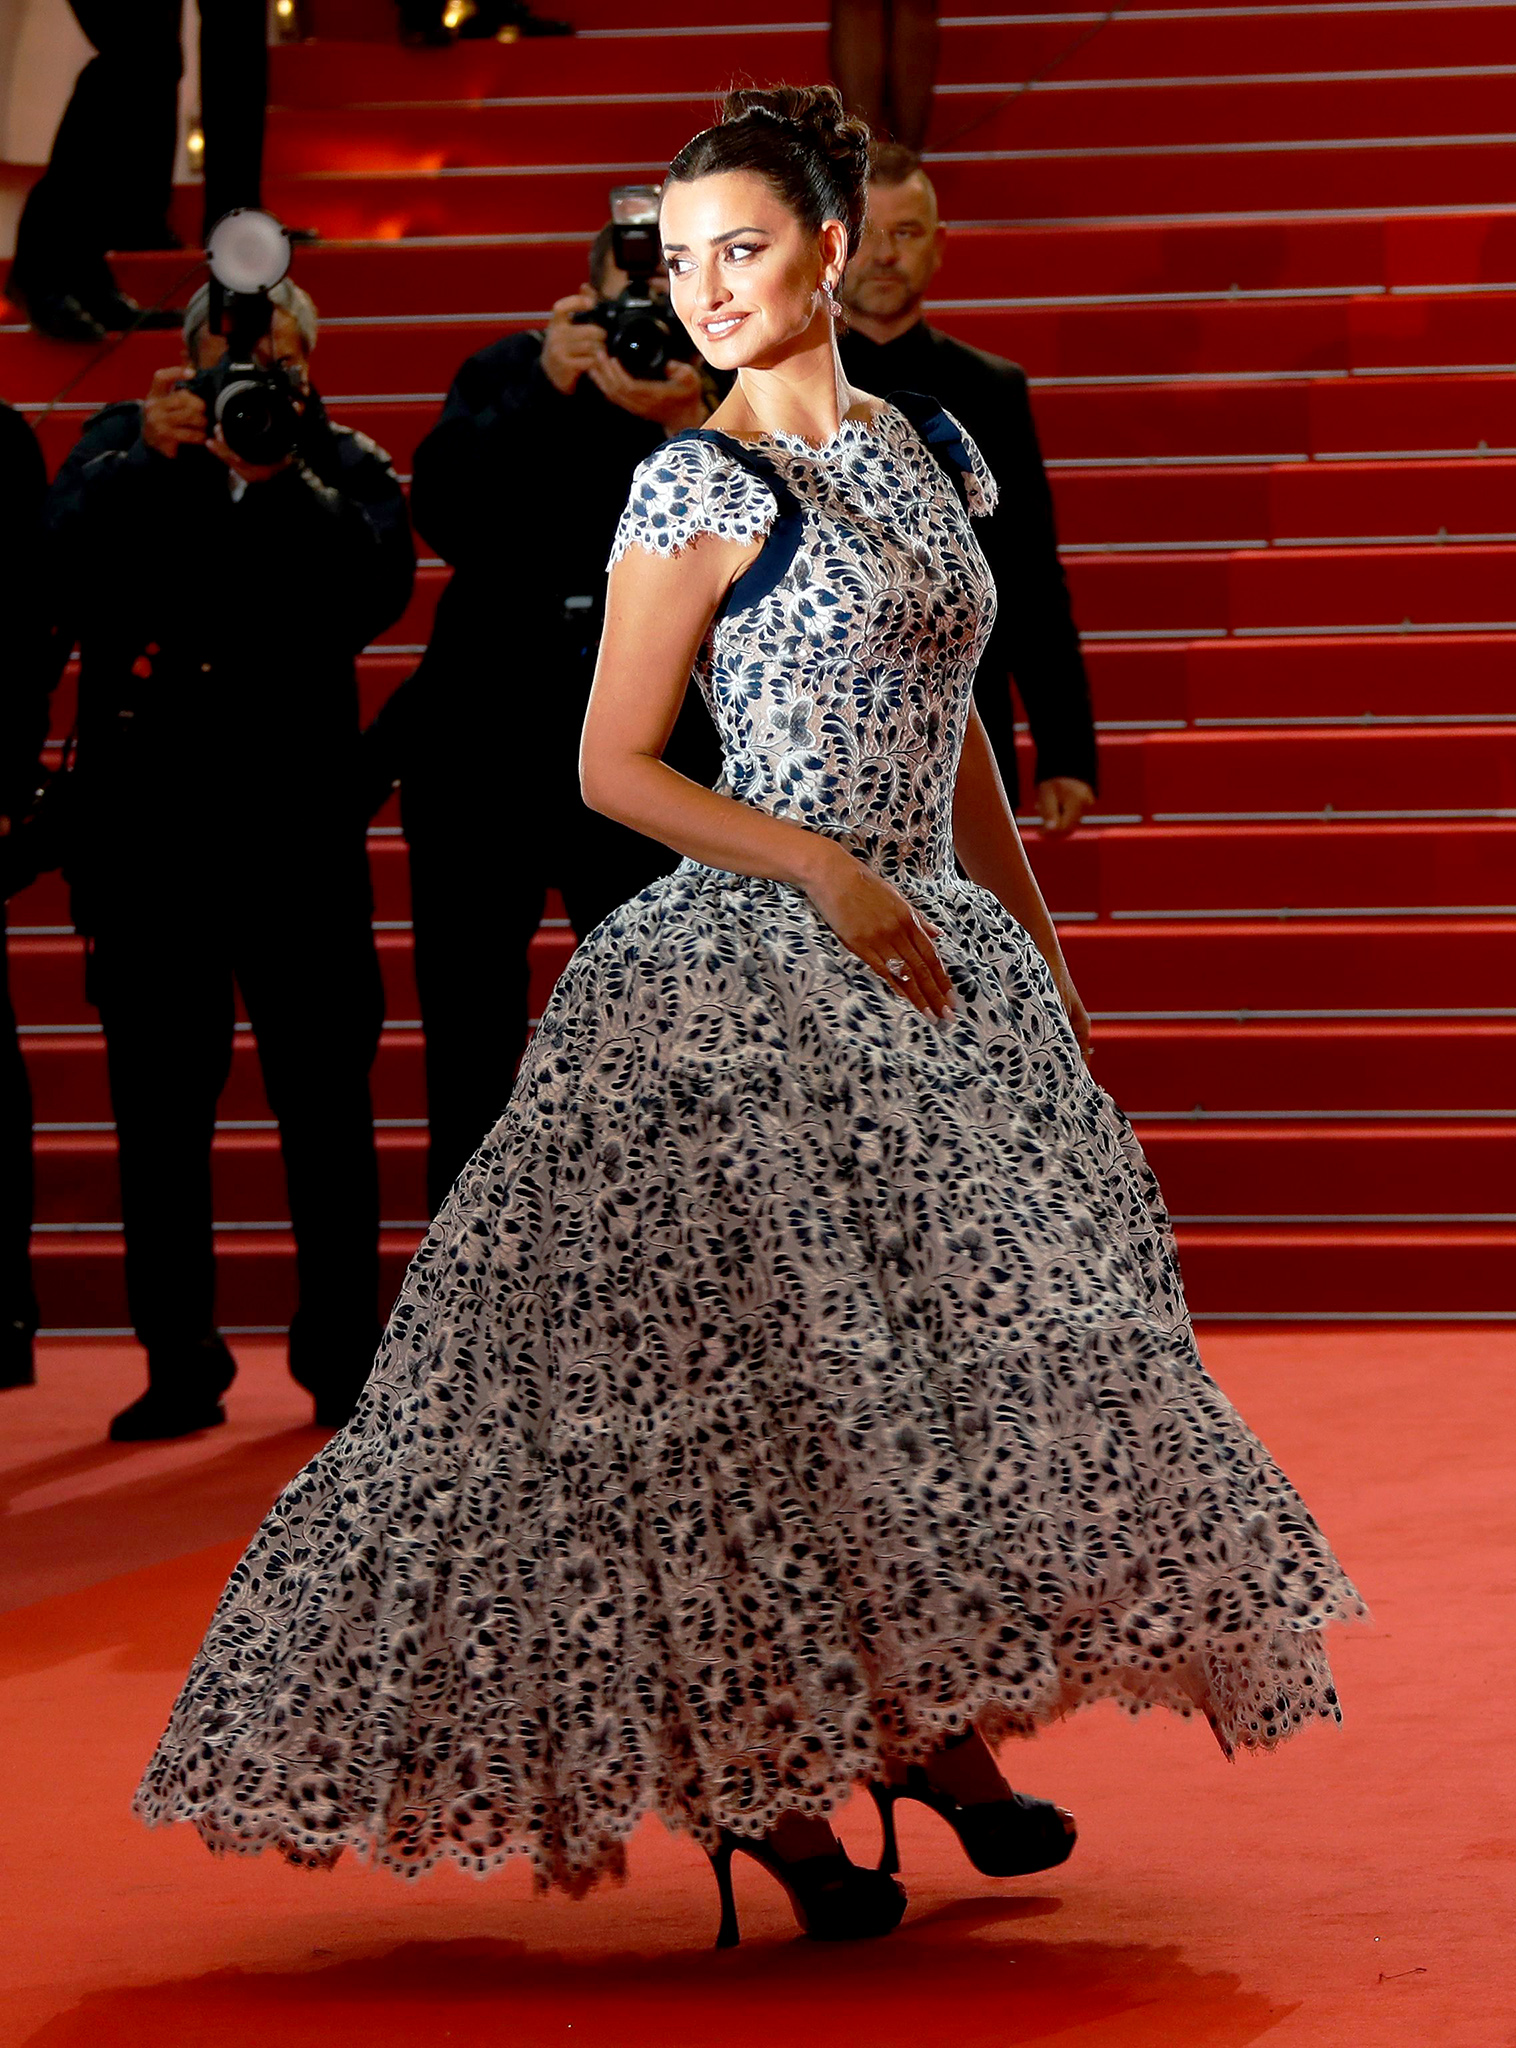 Penelope Cruz arrives for the screening of 'Dolor y Gloria' (Pain and Glory) during the 72nd annual Cannes Film Festival, in Cannes, France, 17 May 2019. The movie is presented in the Official Competition of the festival which runs from 14 to 25 May.'Pain and Glory' premiere, 72nd Cannes Film Festival, France - 17 May 2019